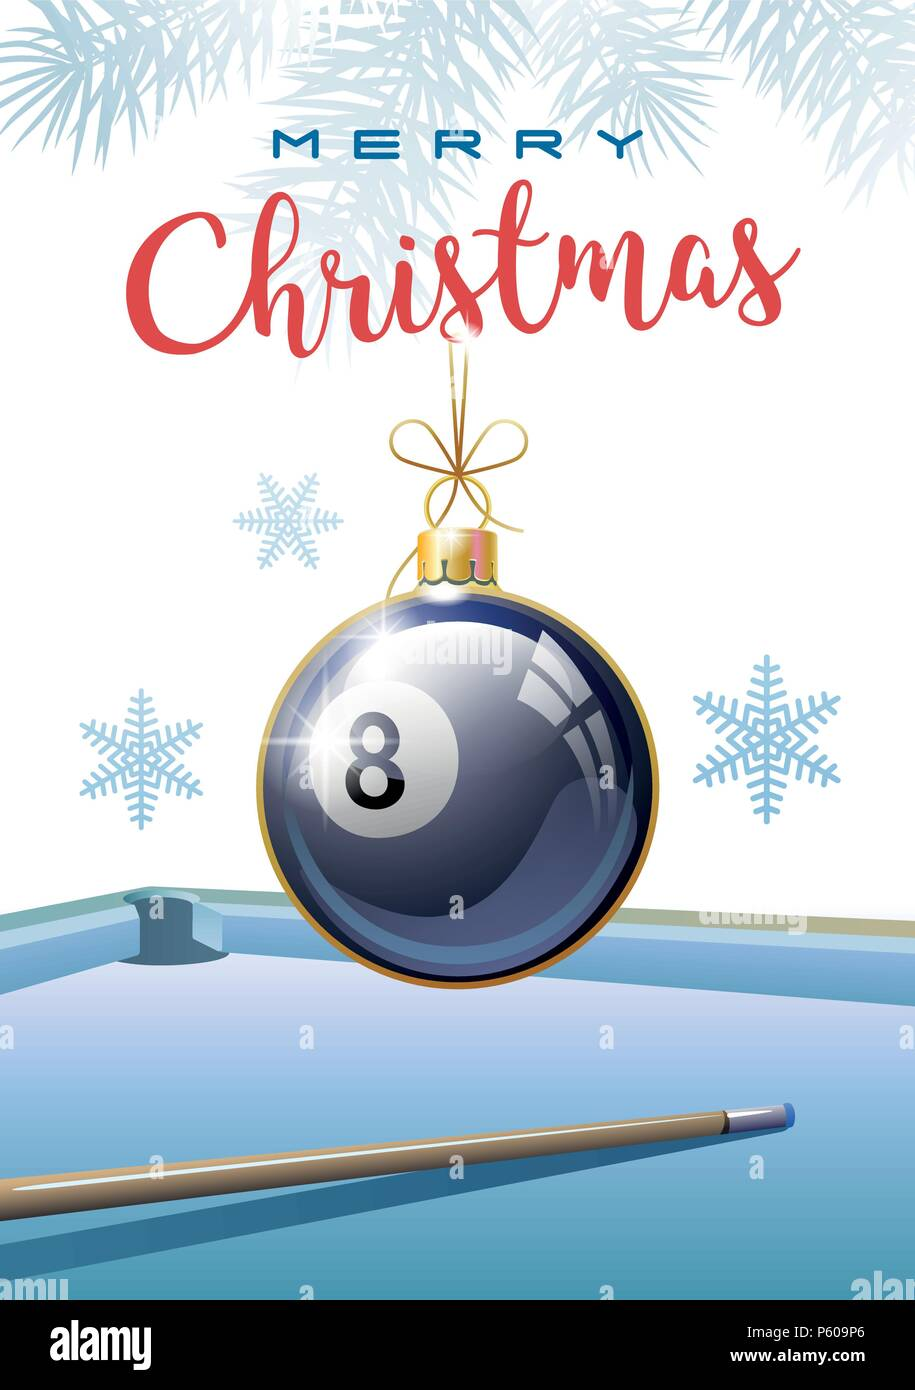 Merry Christmas. Sports greeting card. Realistic Billiard ball in the shape of a Christmas ball. Vector illustration. - Stock Image